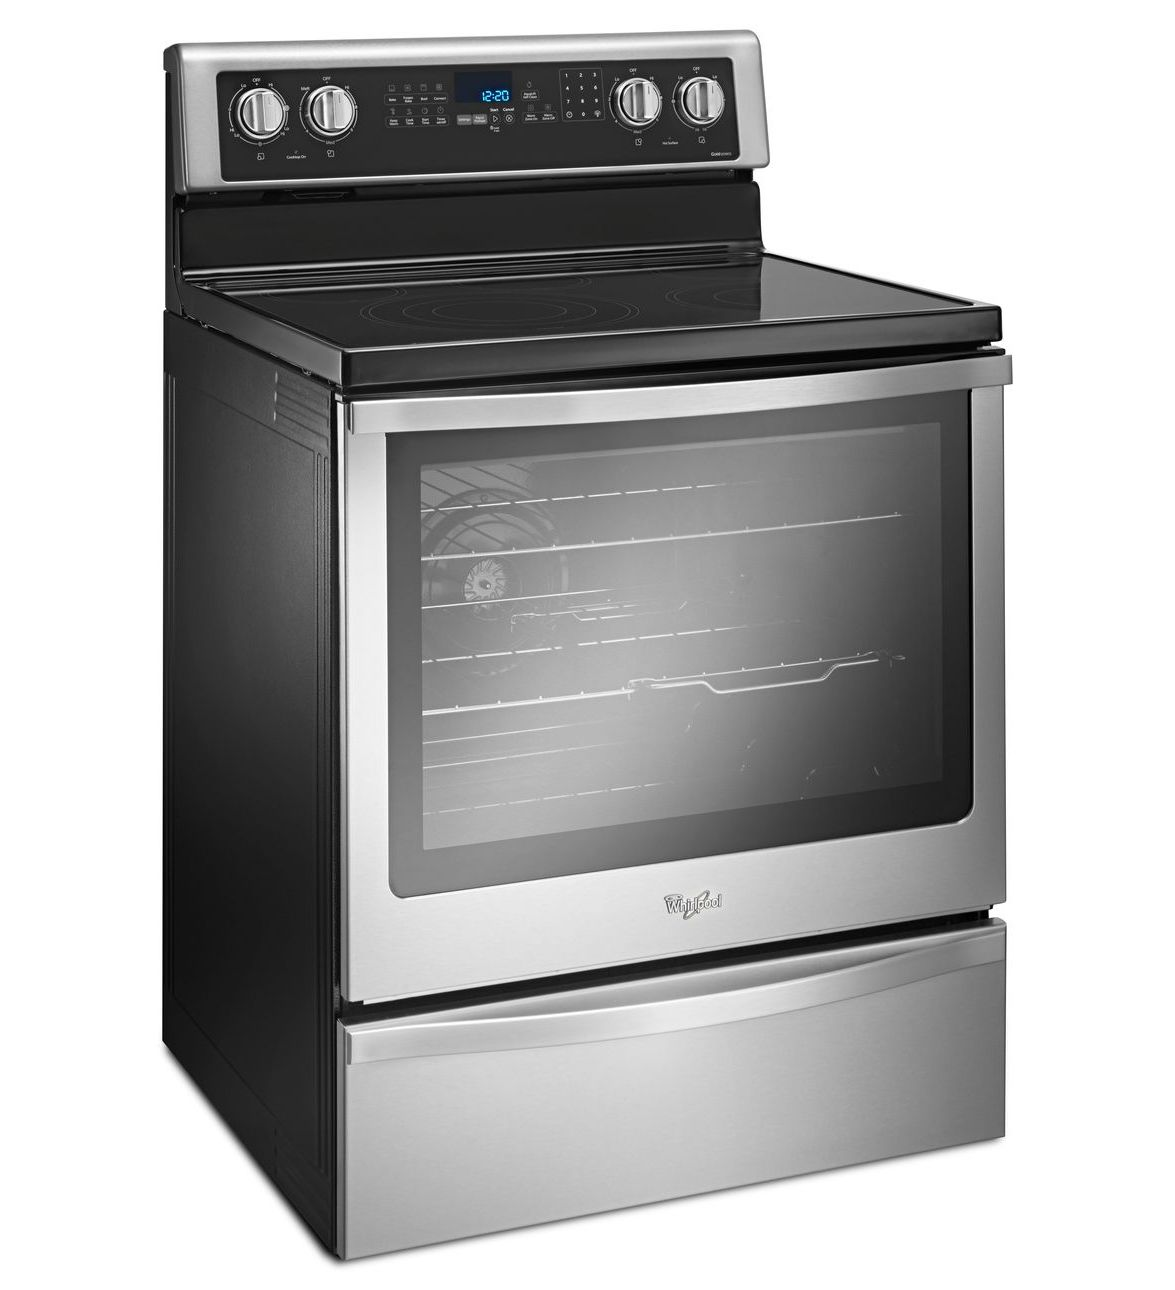 Whirlpool Stove Stainless Steel Model #WFE745H0FS